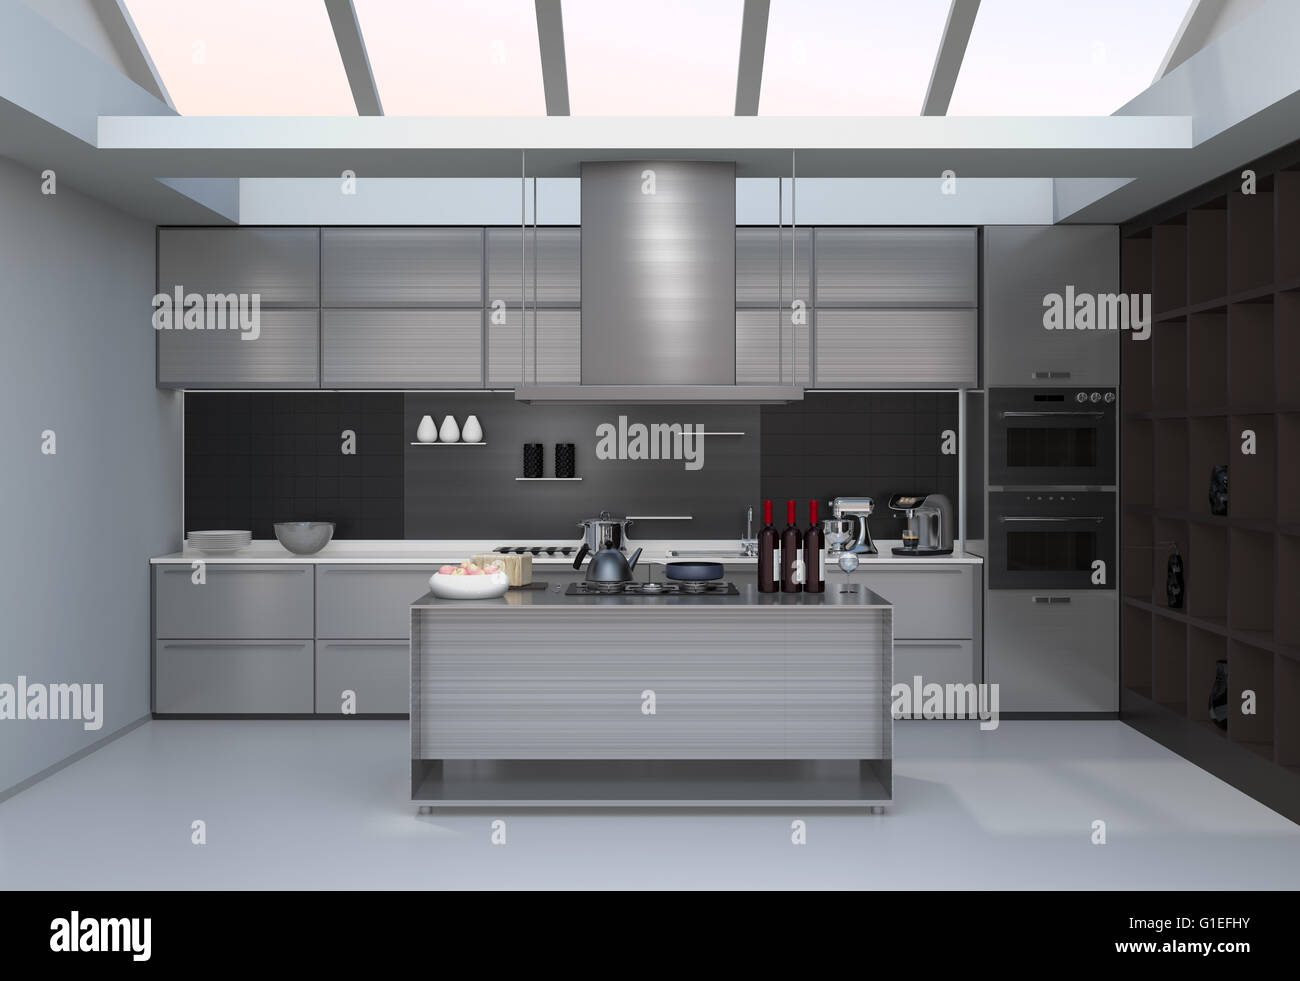 Modern Kitchen Interior With Smart Appliances In Silver Color Coordination.  3D Rendering Image.